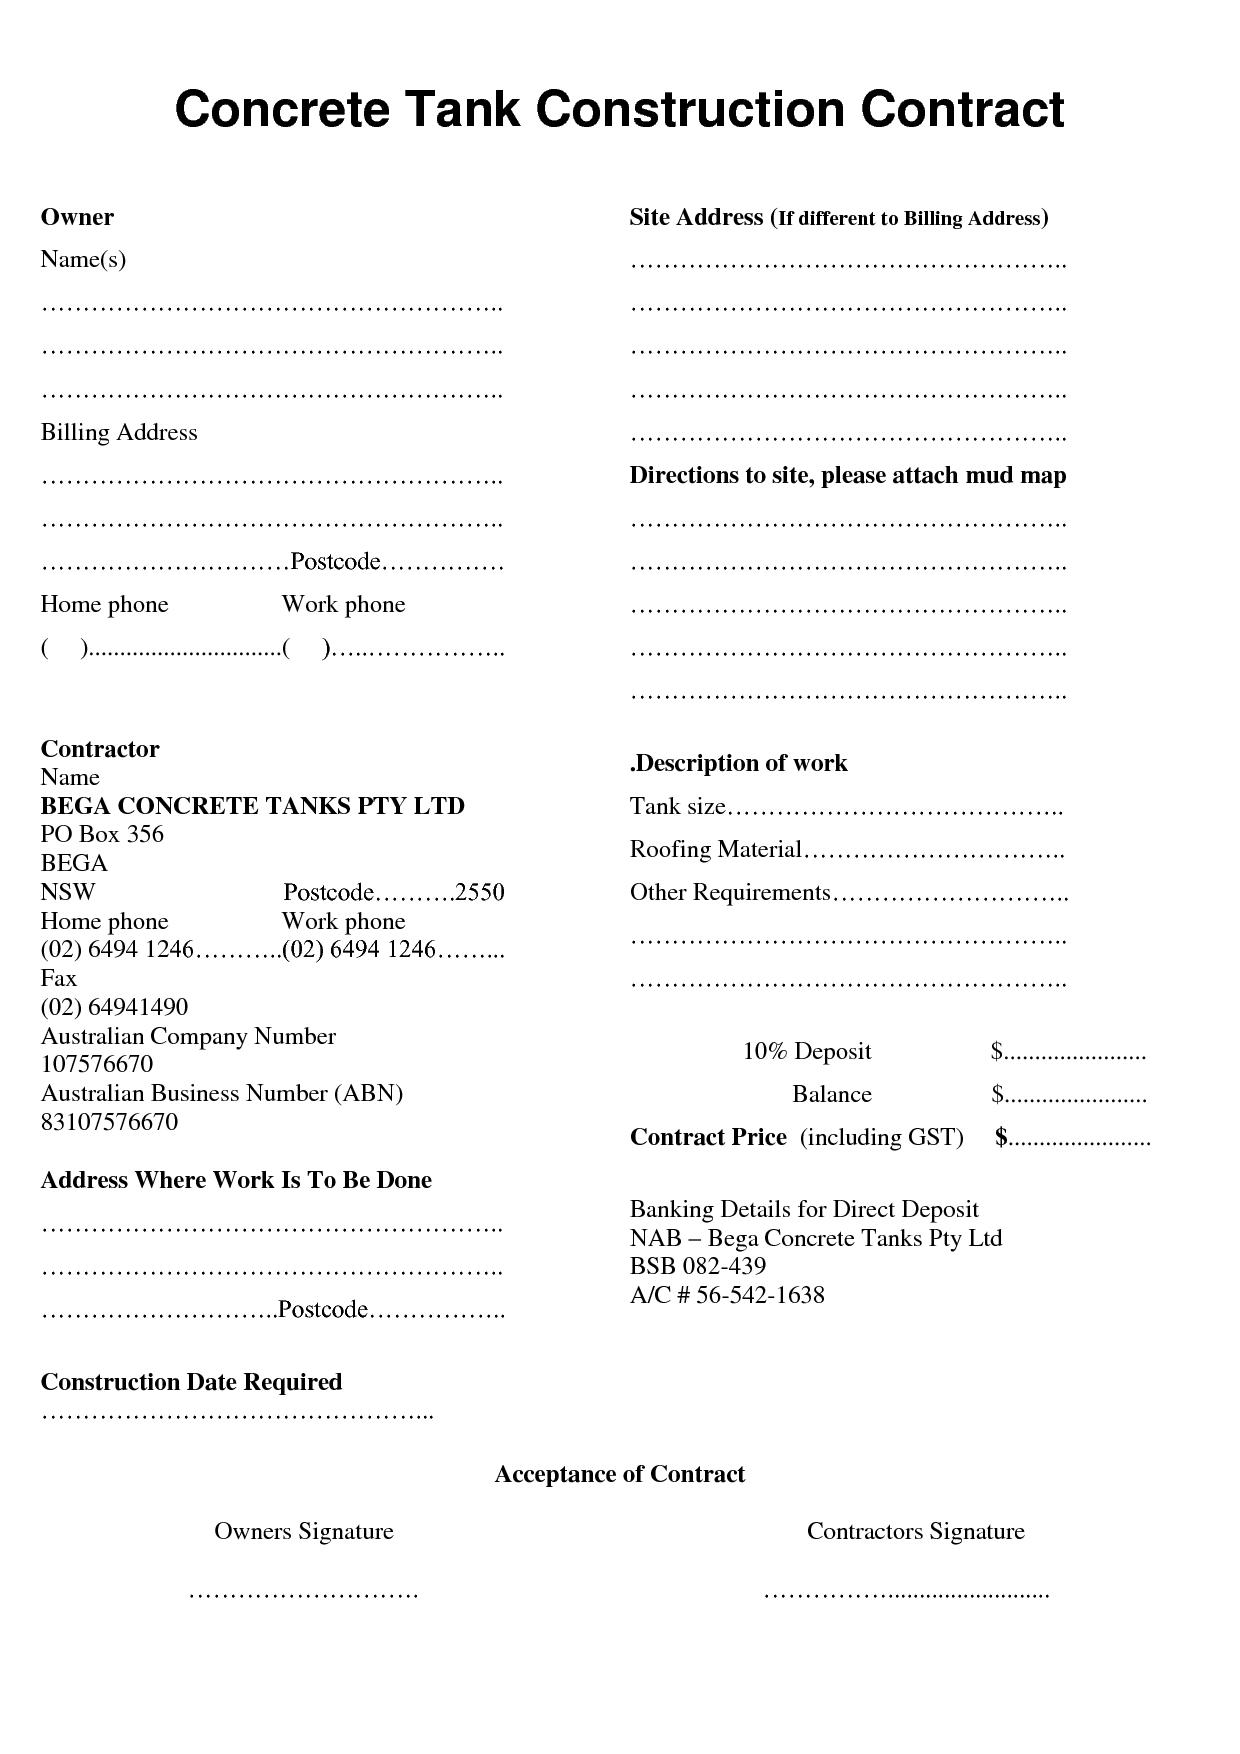 Concrete Contract Template